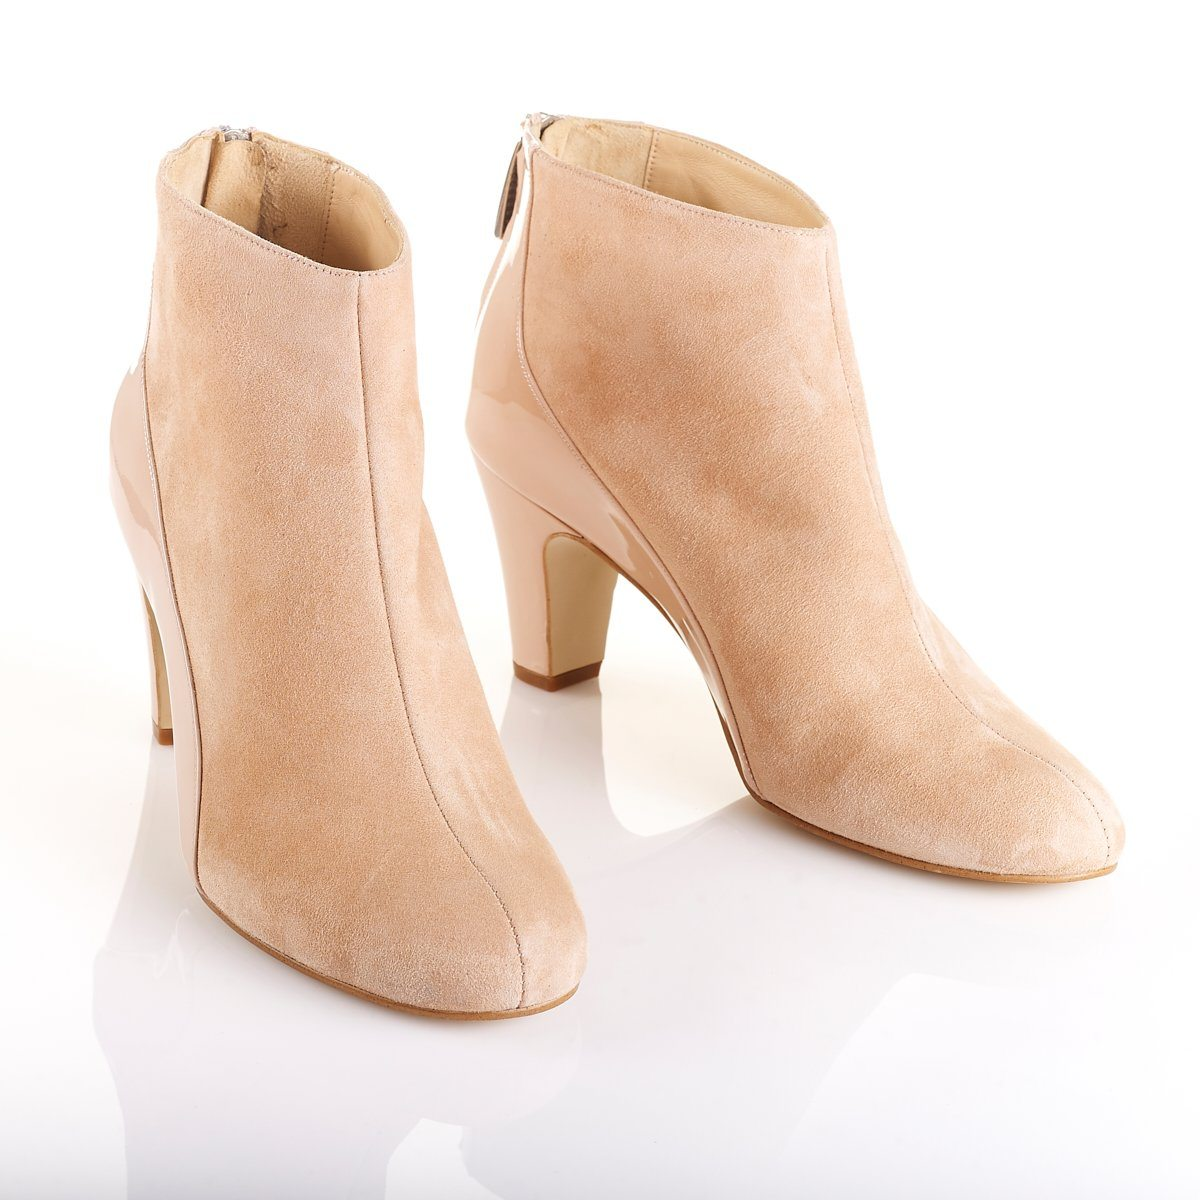 She.E.O - Luxury Blush Ankle Boots (Pre-Order) - Shoes by Shaherazad